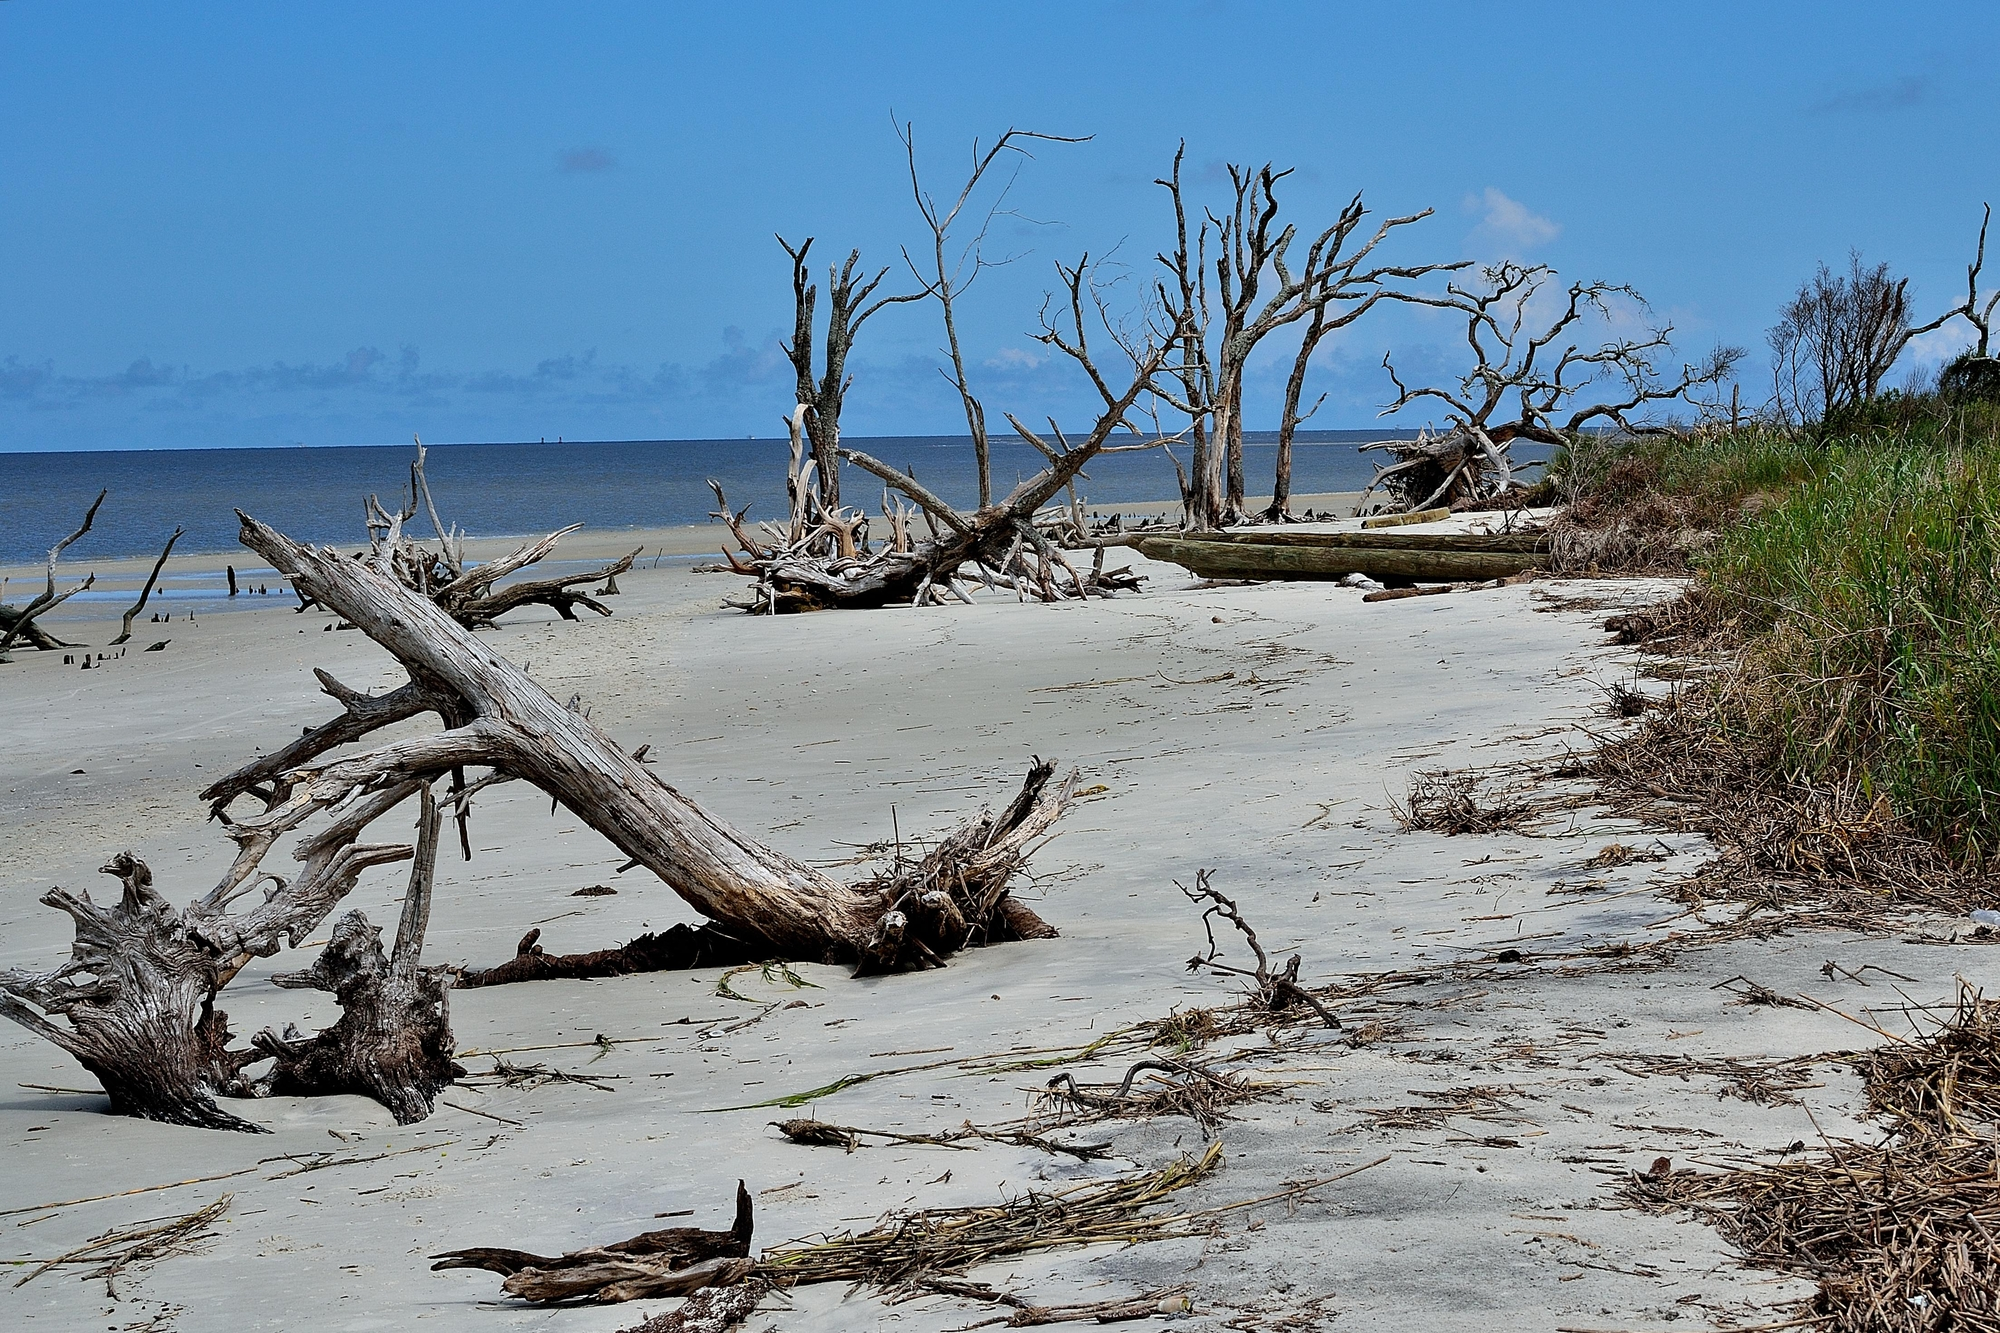 large branches of driftwood scattered across a white sand beach